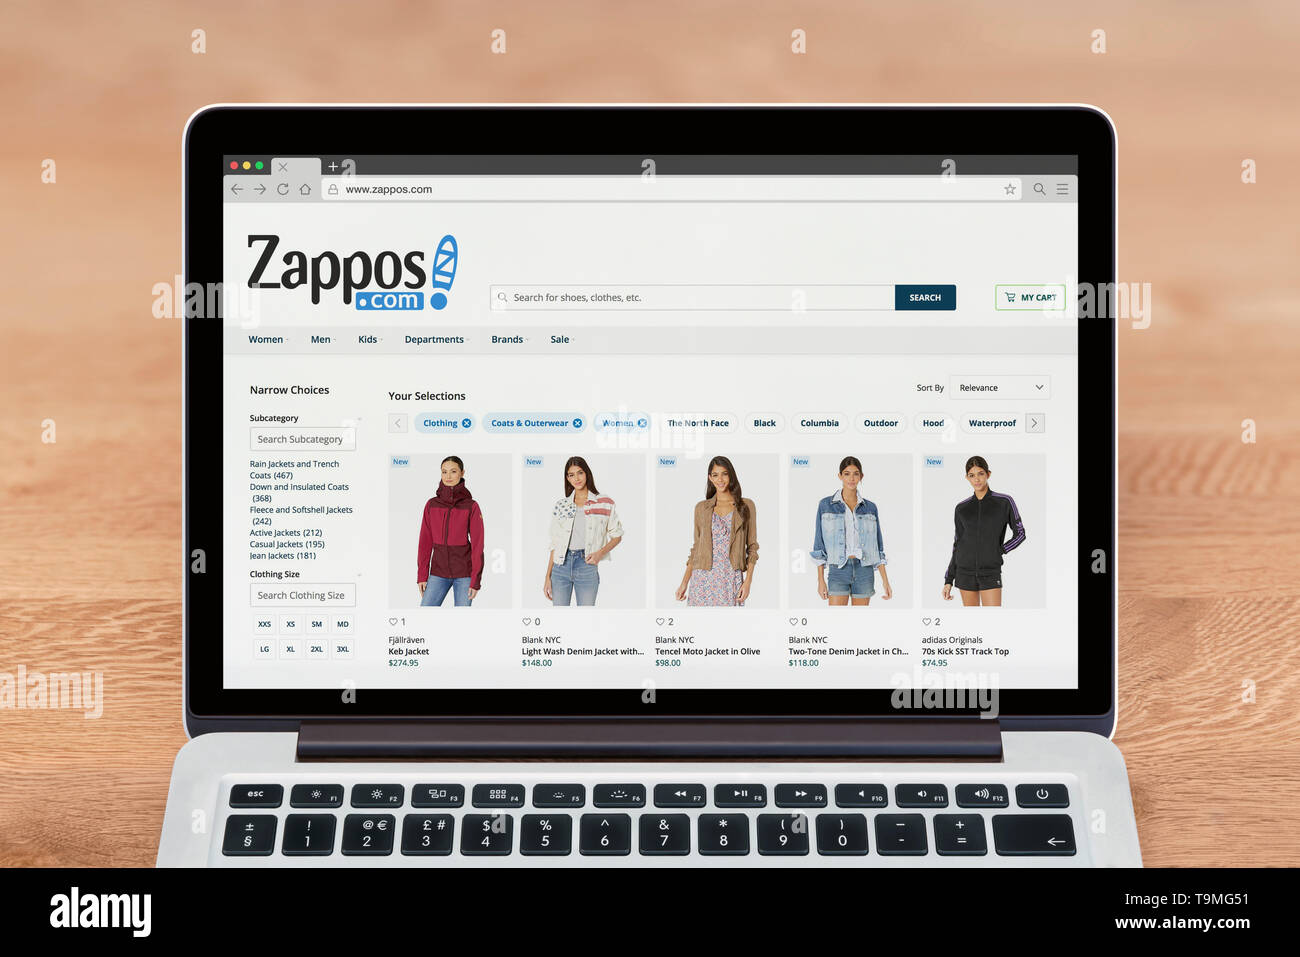 An Apple Macbook displays the Zappos website (Editorial use only). - Stock Image